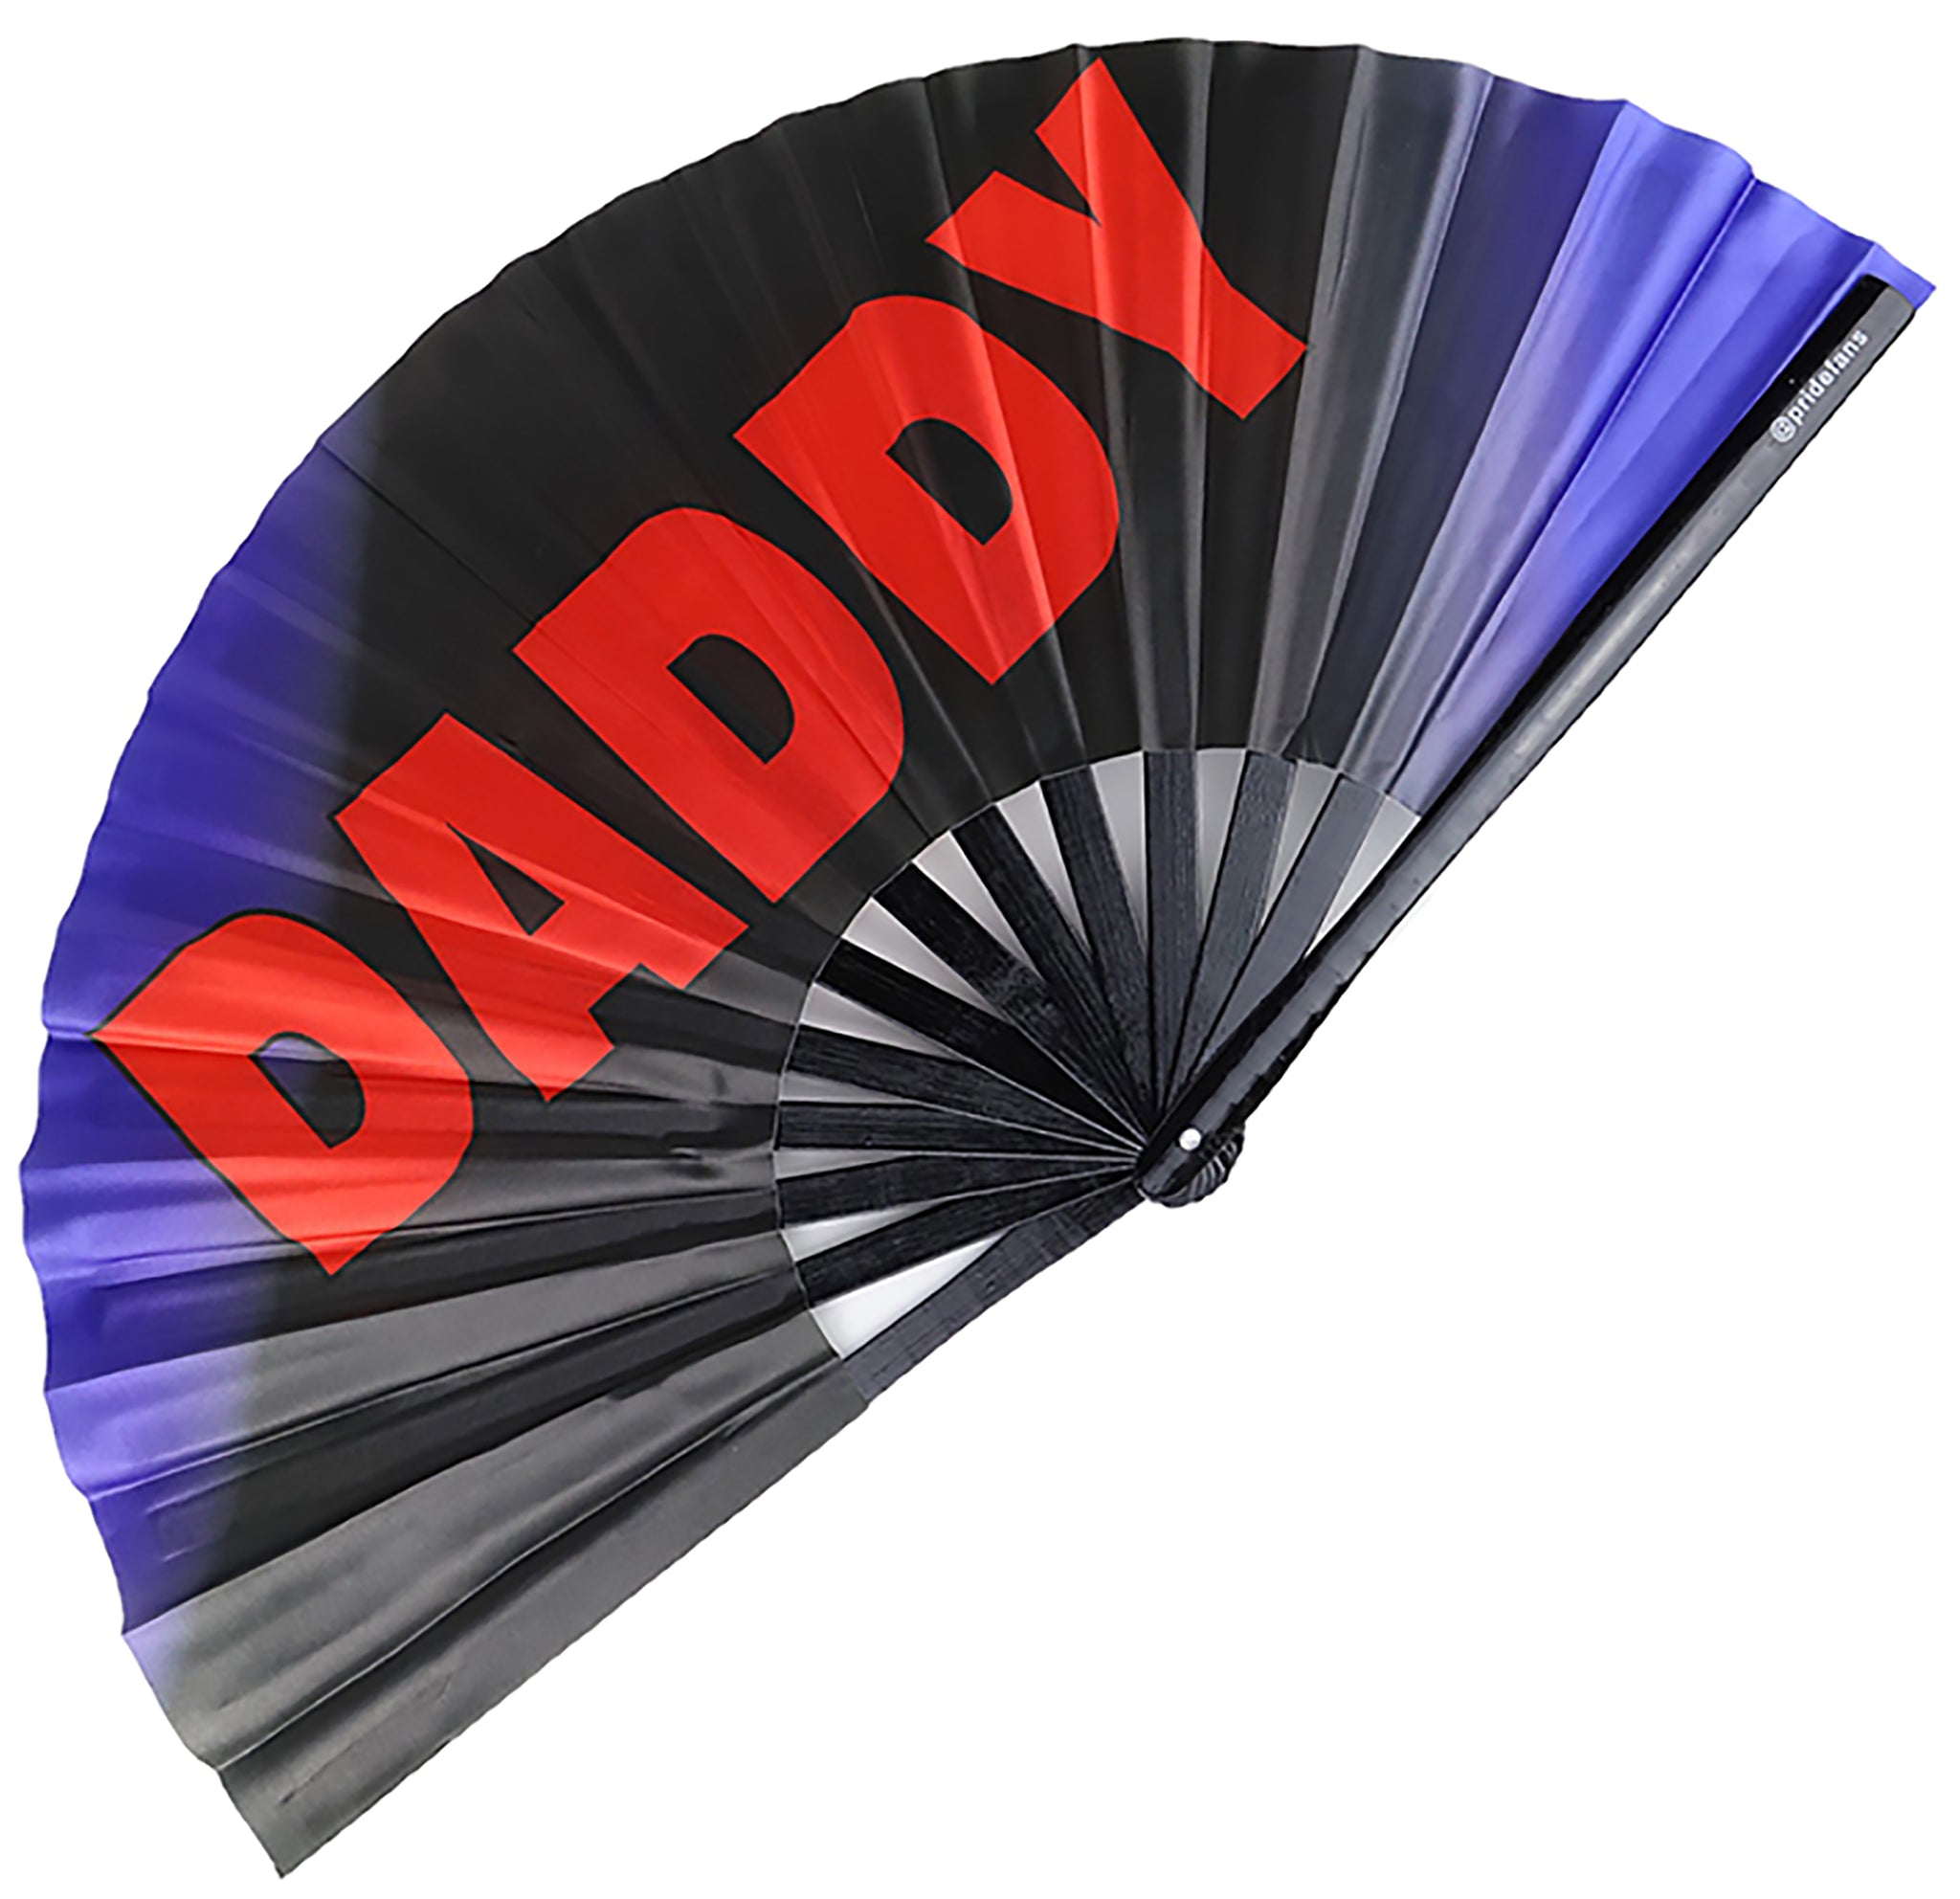 Pride Fan daddy fan red letters black background